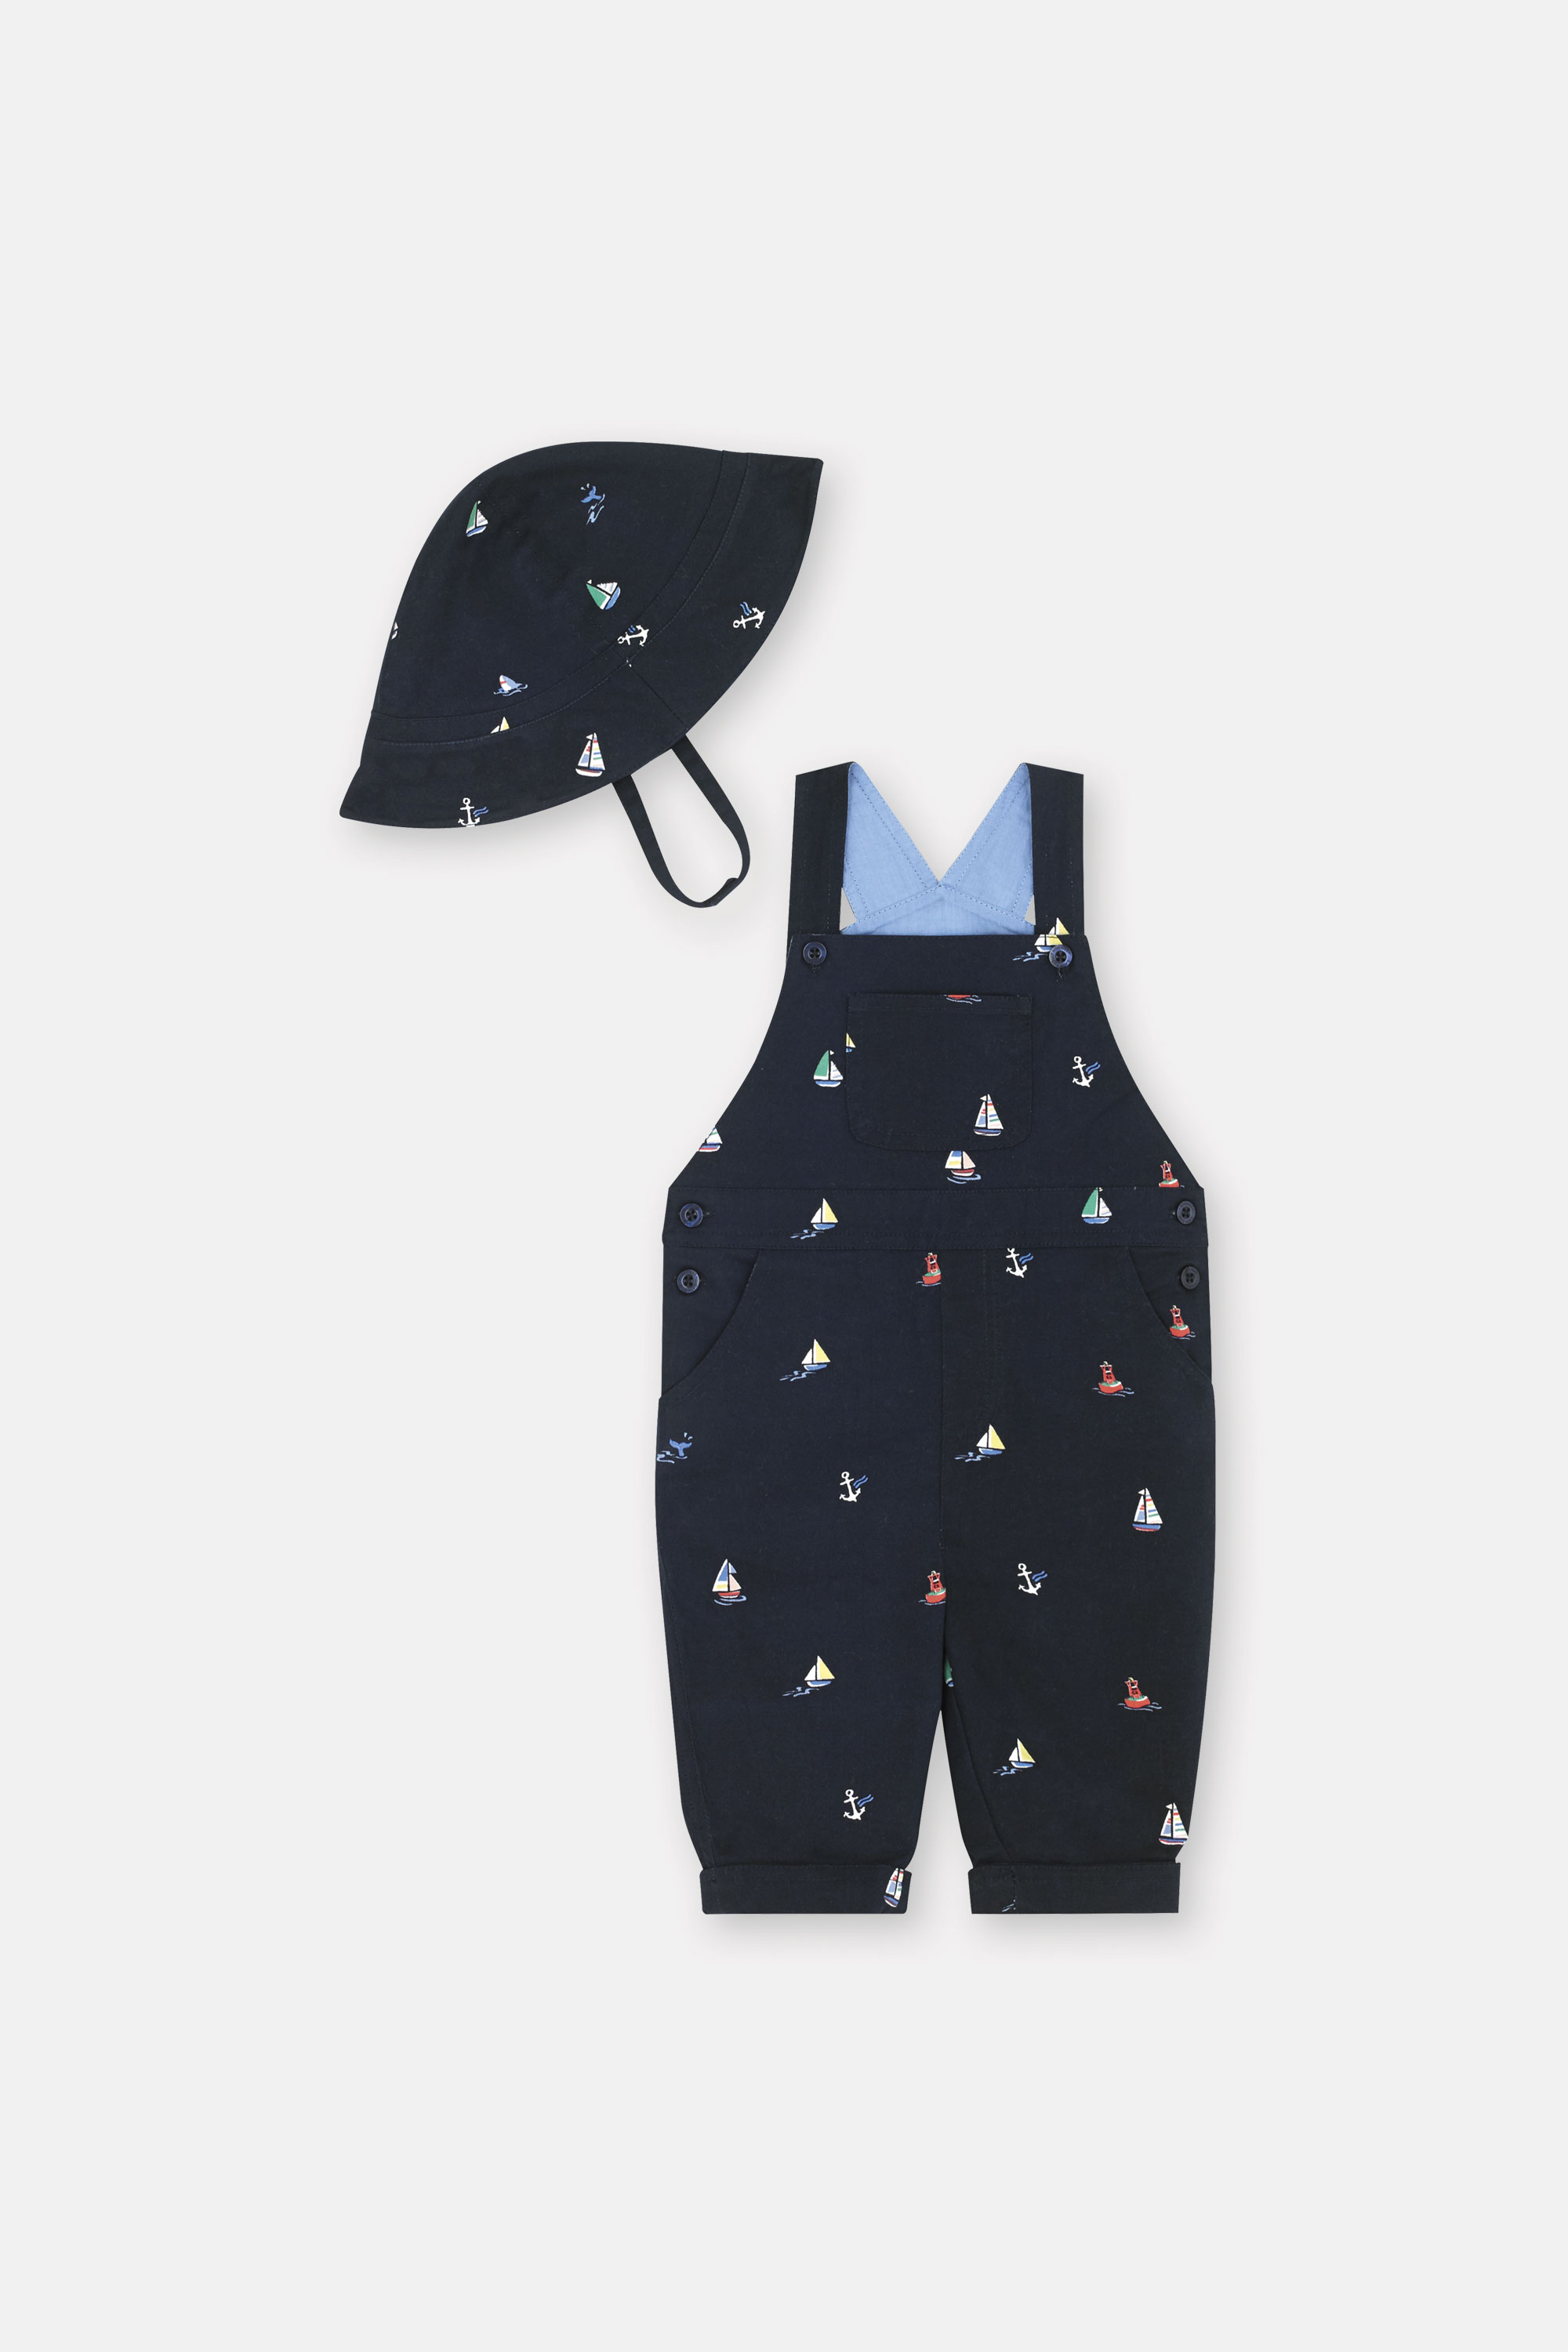 Cath Kidston Small Sail Boats Dungarees in Bright Navy, 12-18 Mo